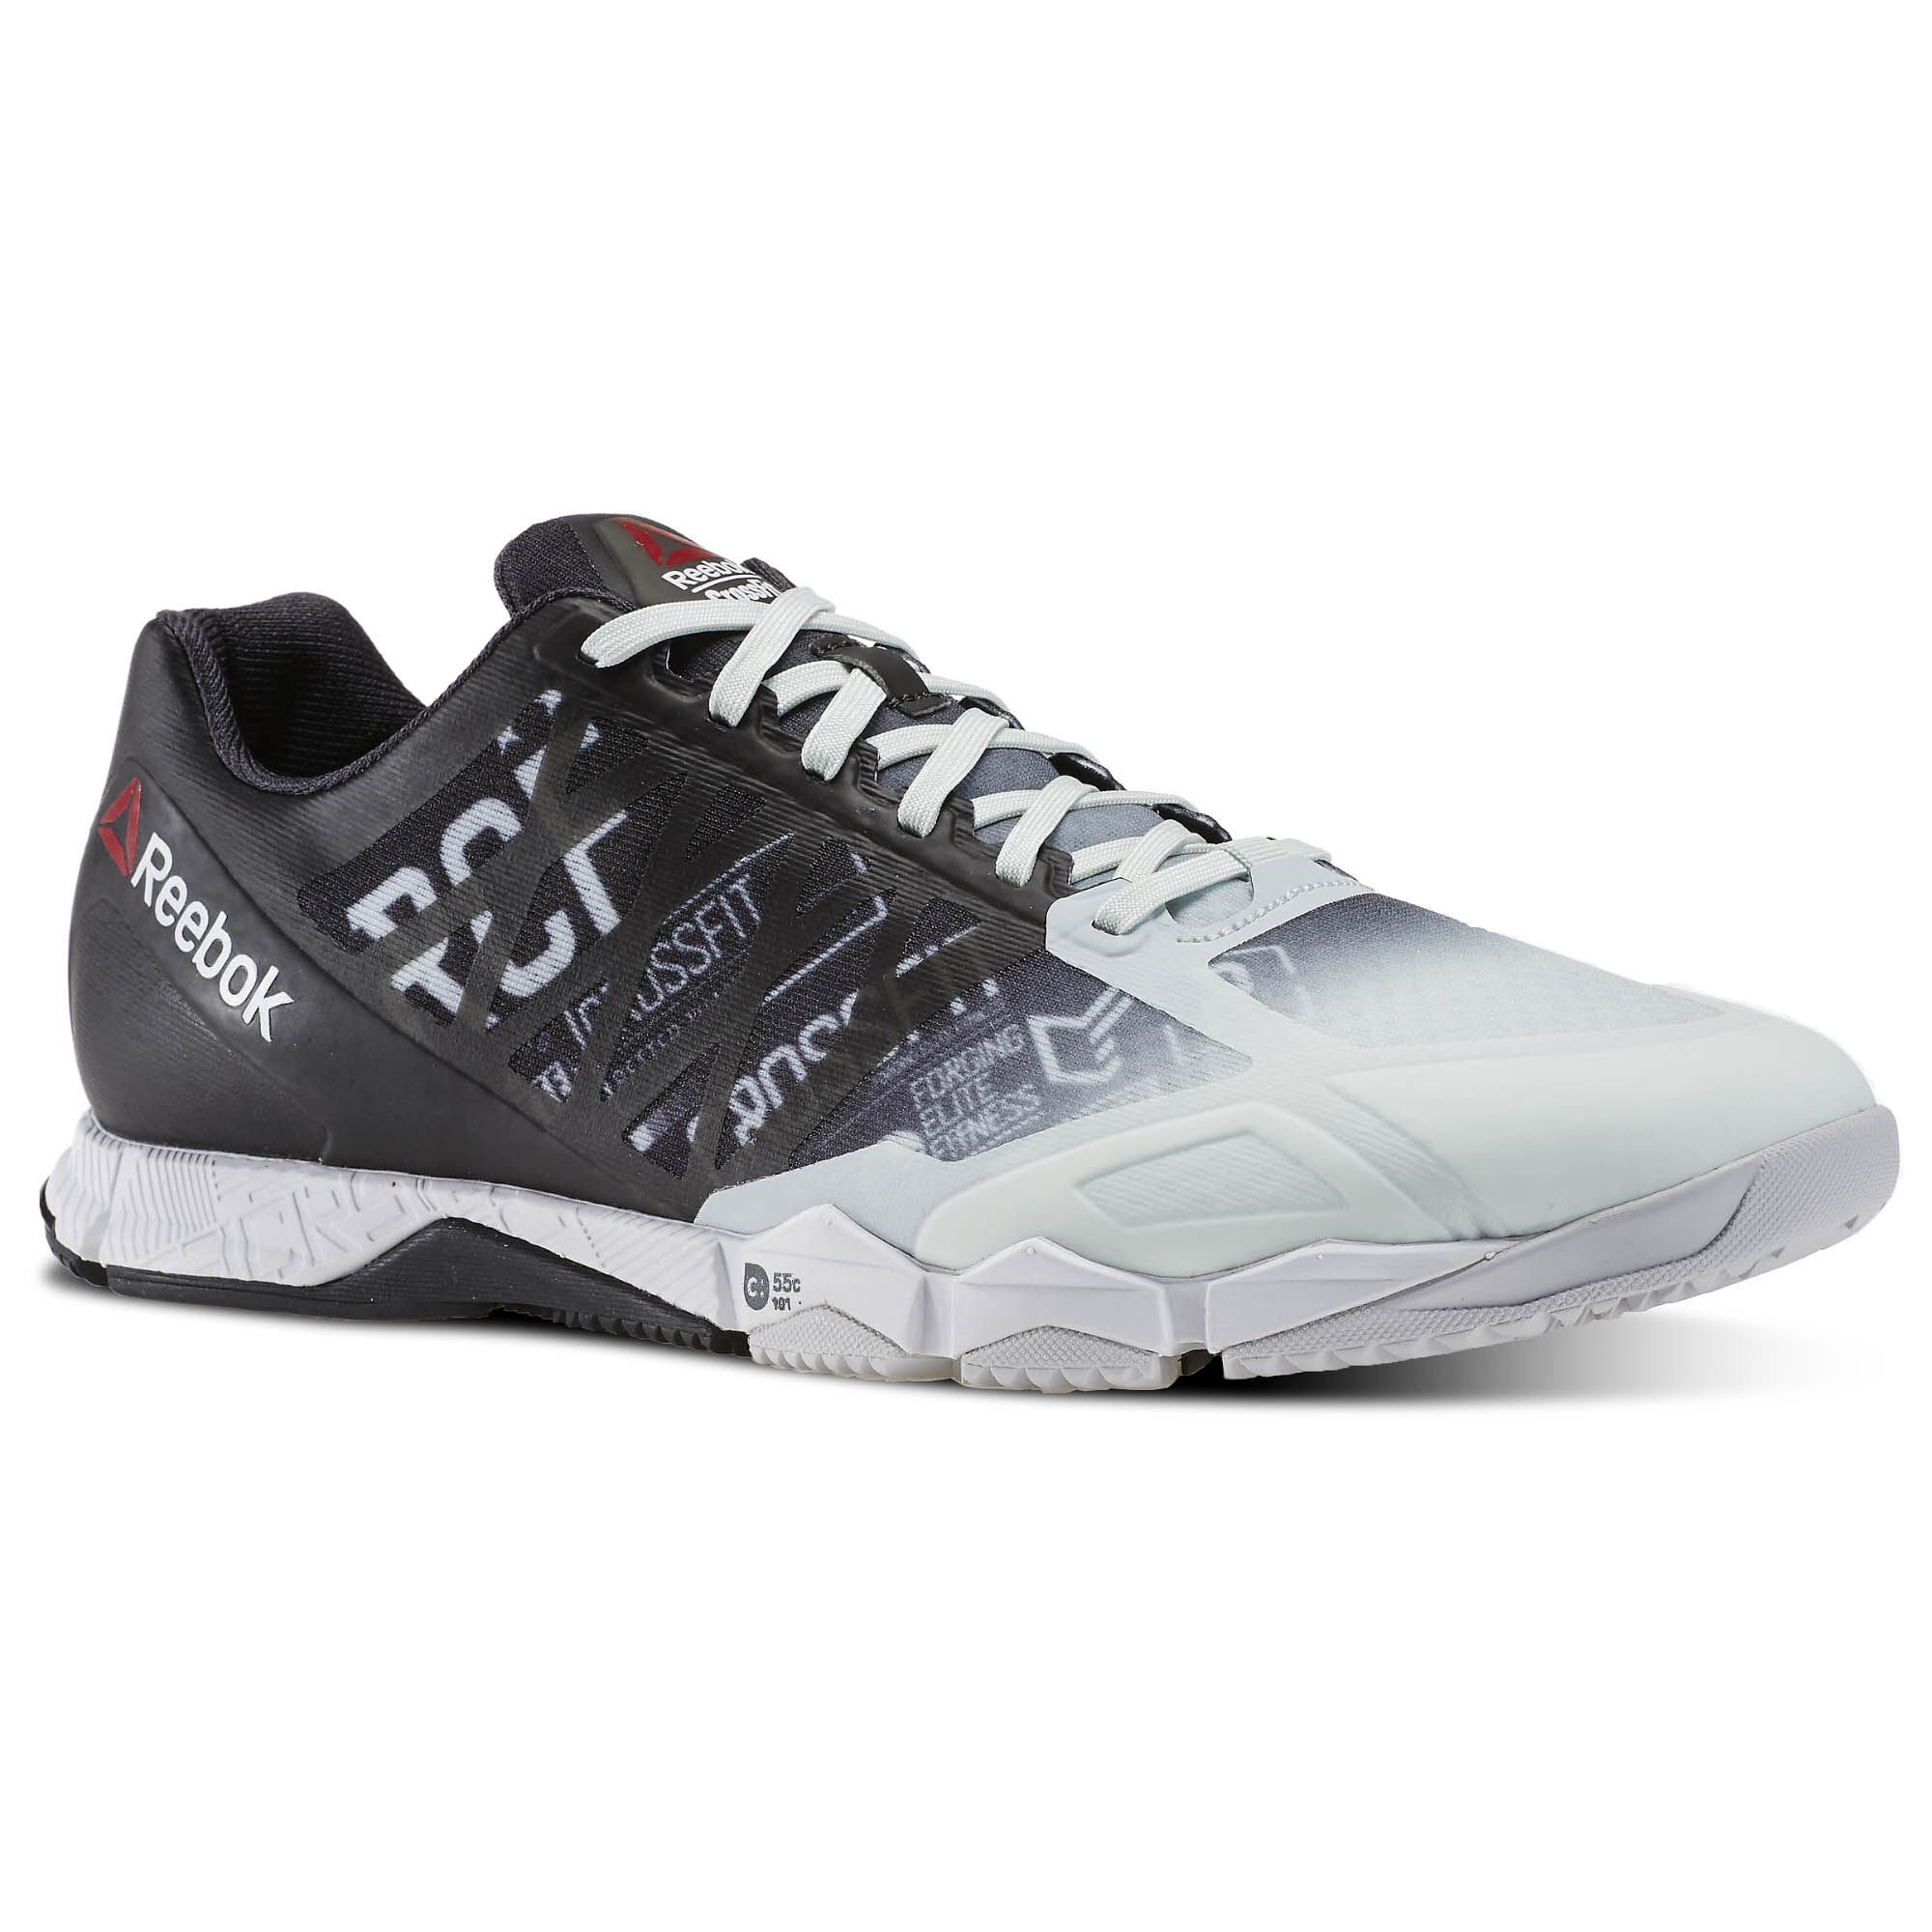 8113d458ae29 reebok lifting shoes uk cheap   OFF51% The Largest Catalog Discounts